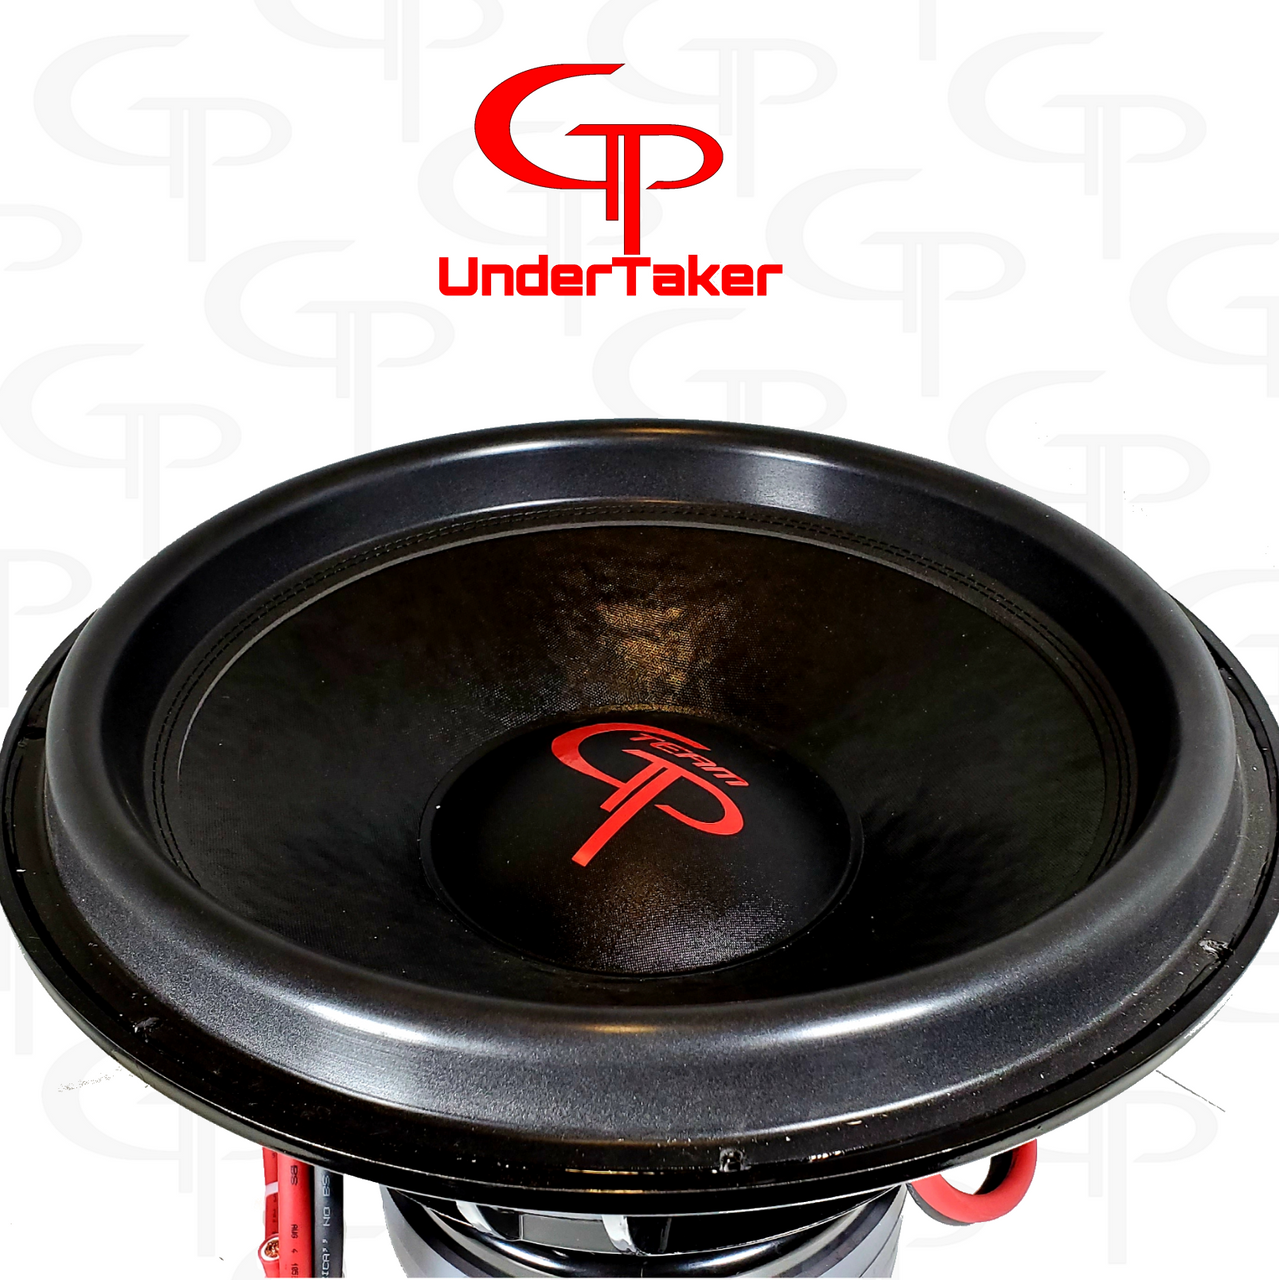 "**Team GP Undertaker 18"" Subwoofer UT18 5,000 RMS"